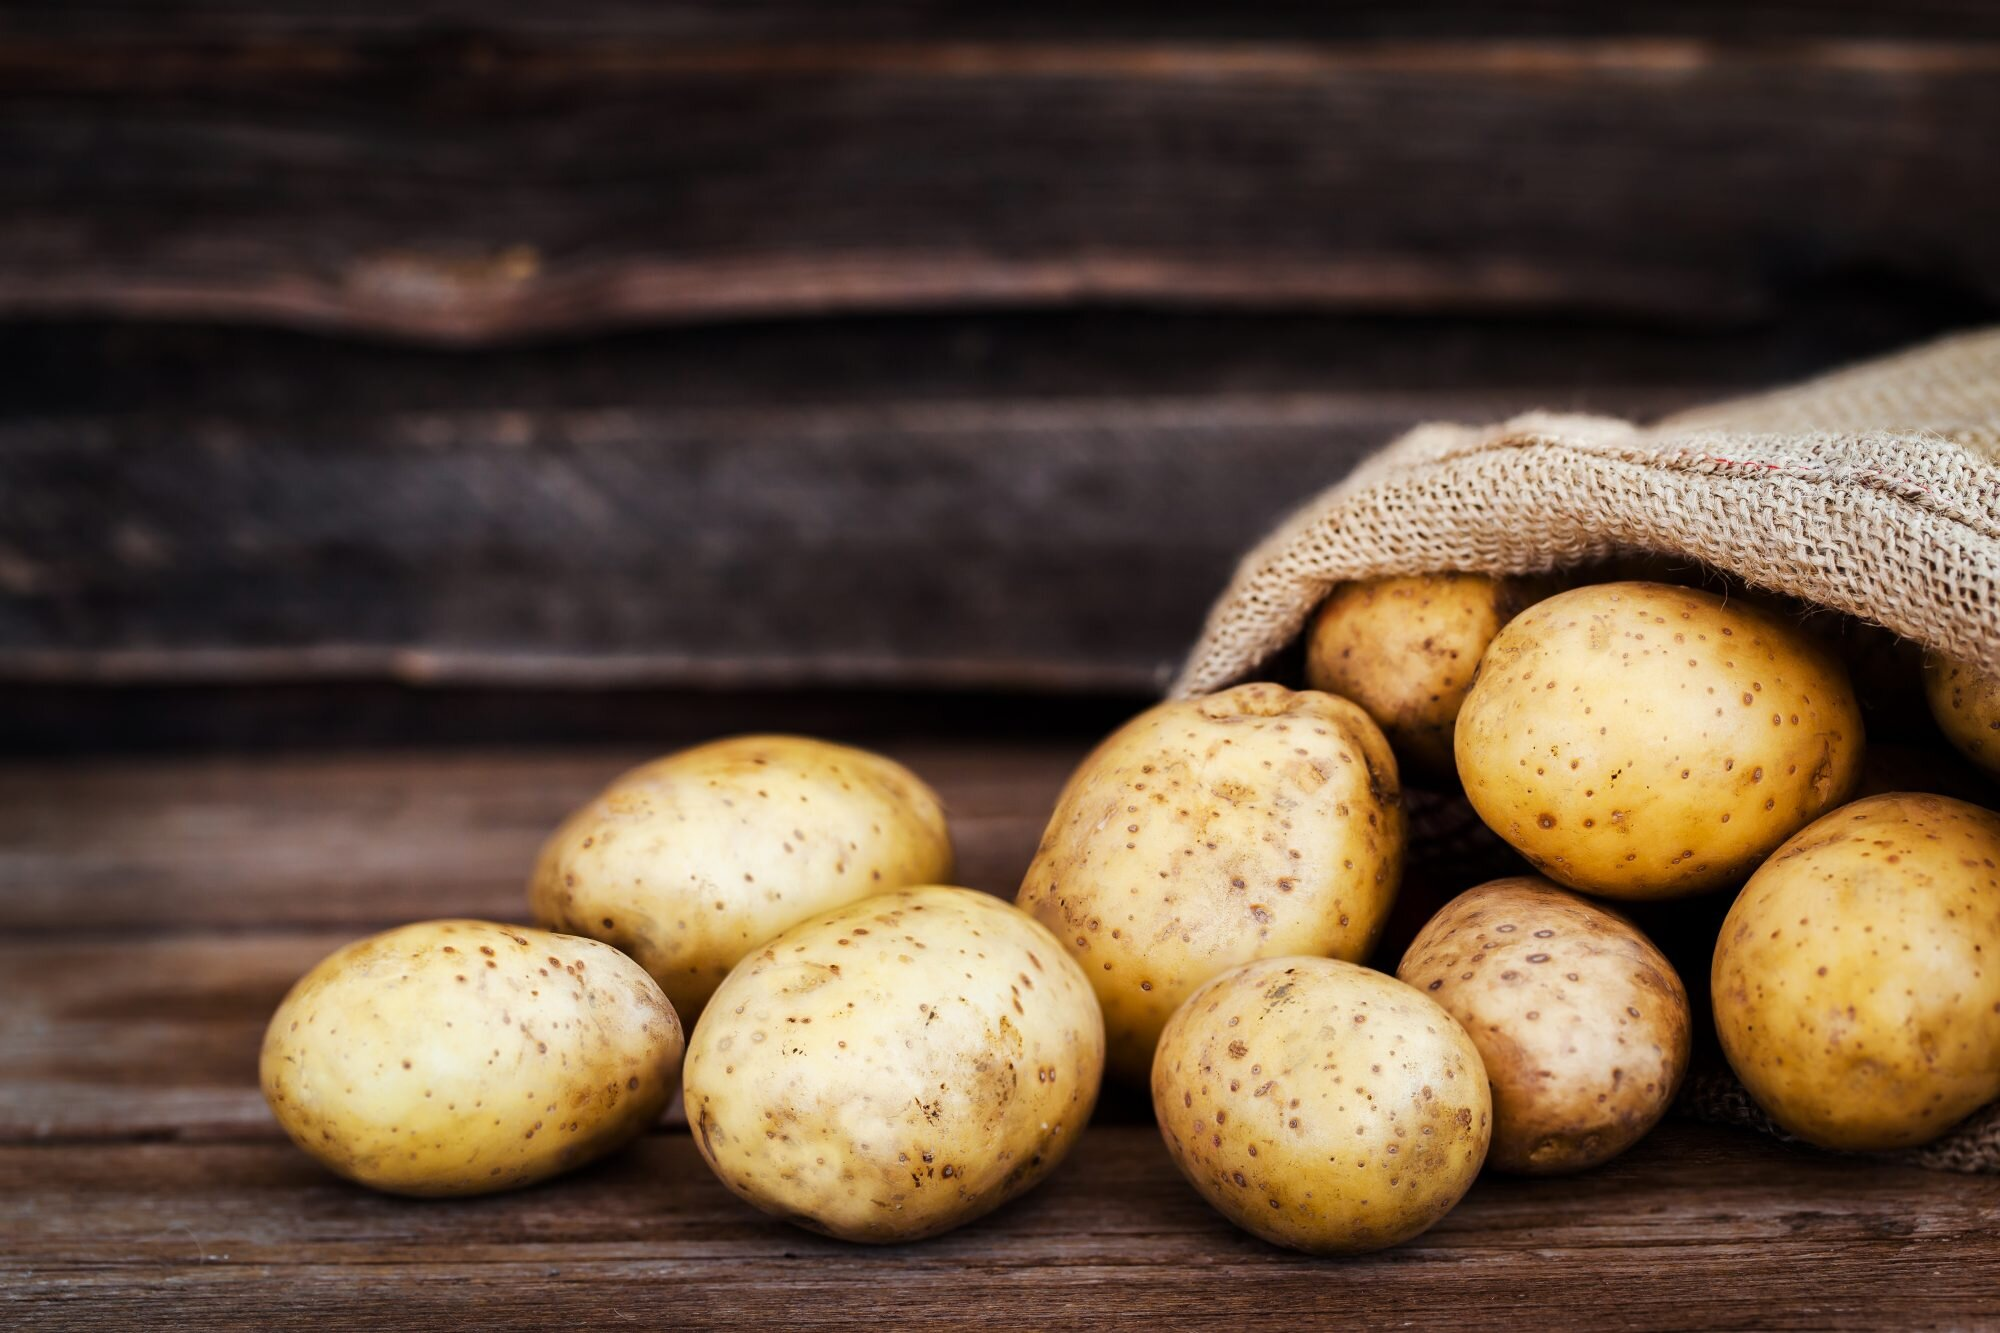 Are Potatoes Healthy or Unhealthy?